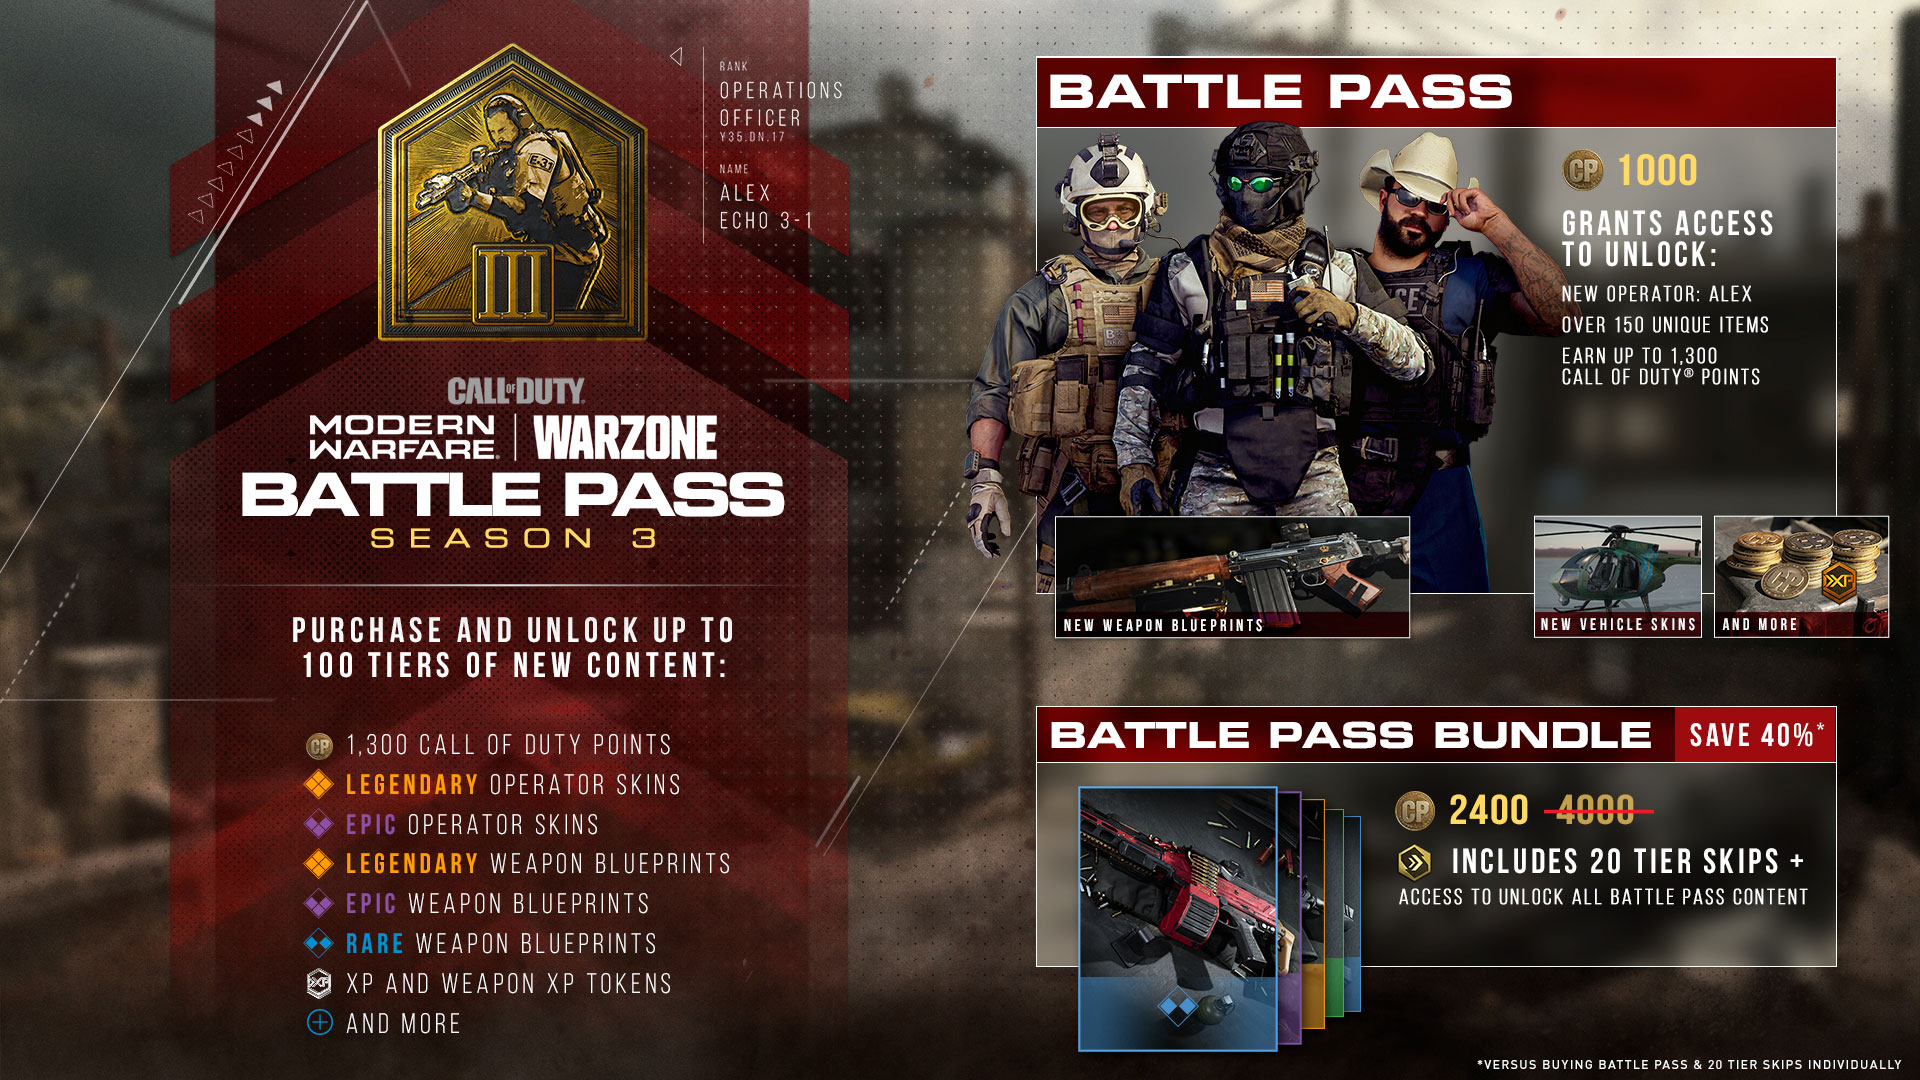 Modern Warfare Season 3 battle pass rewards.